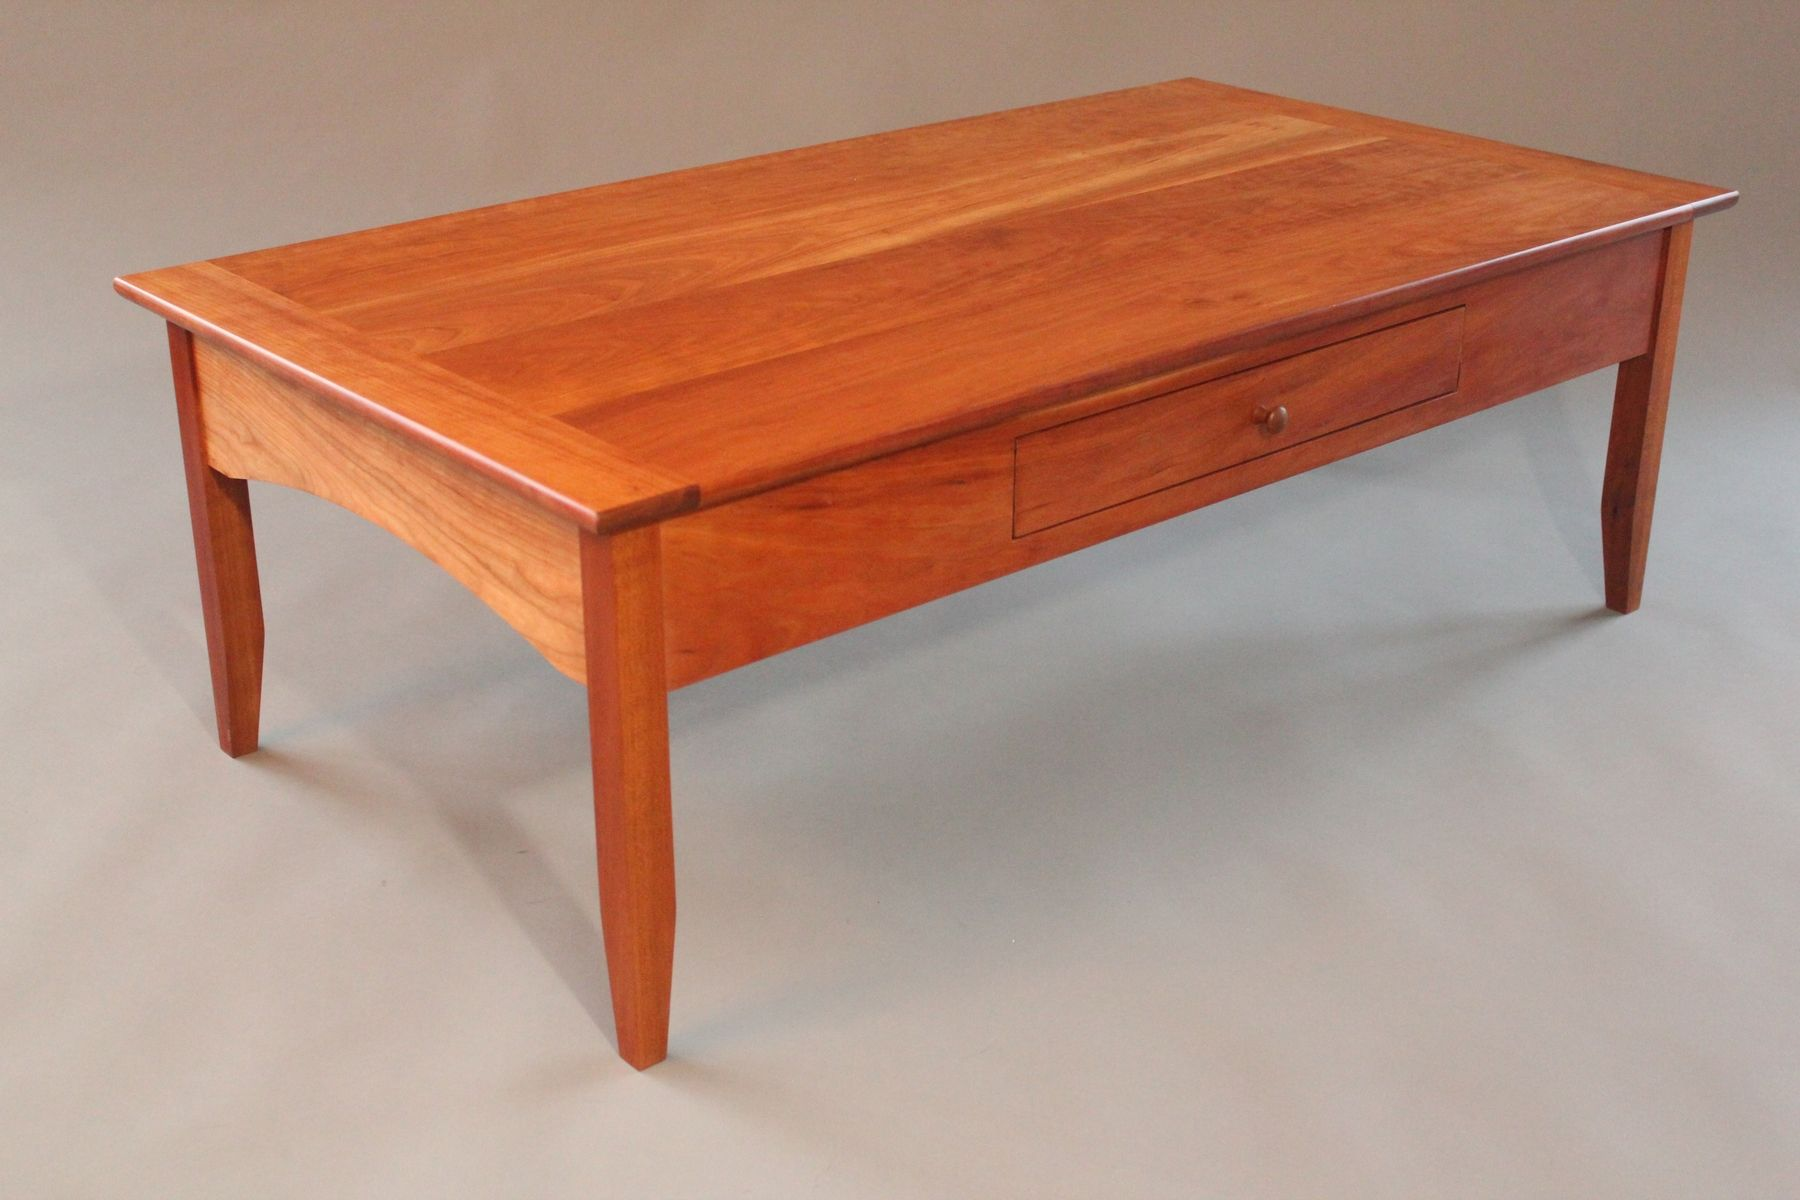 custom made cherry coffee table wood and end tables large ashley north shore bedroom collection average dining room size frosted glass bedside steel box frame round protector tea